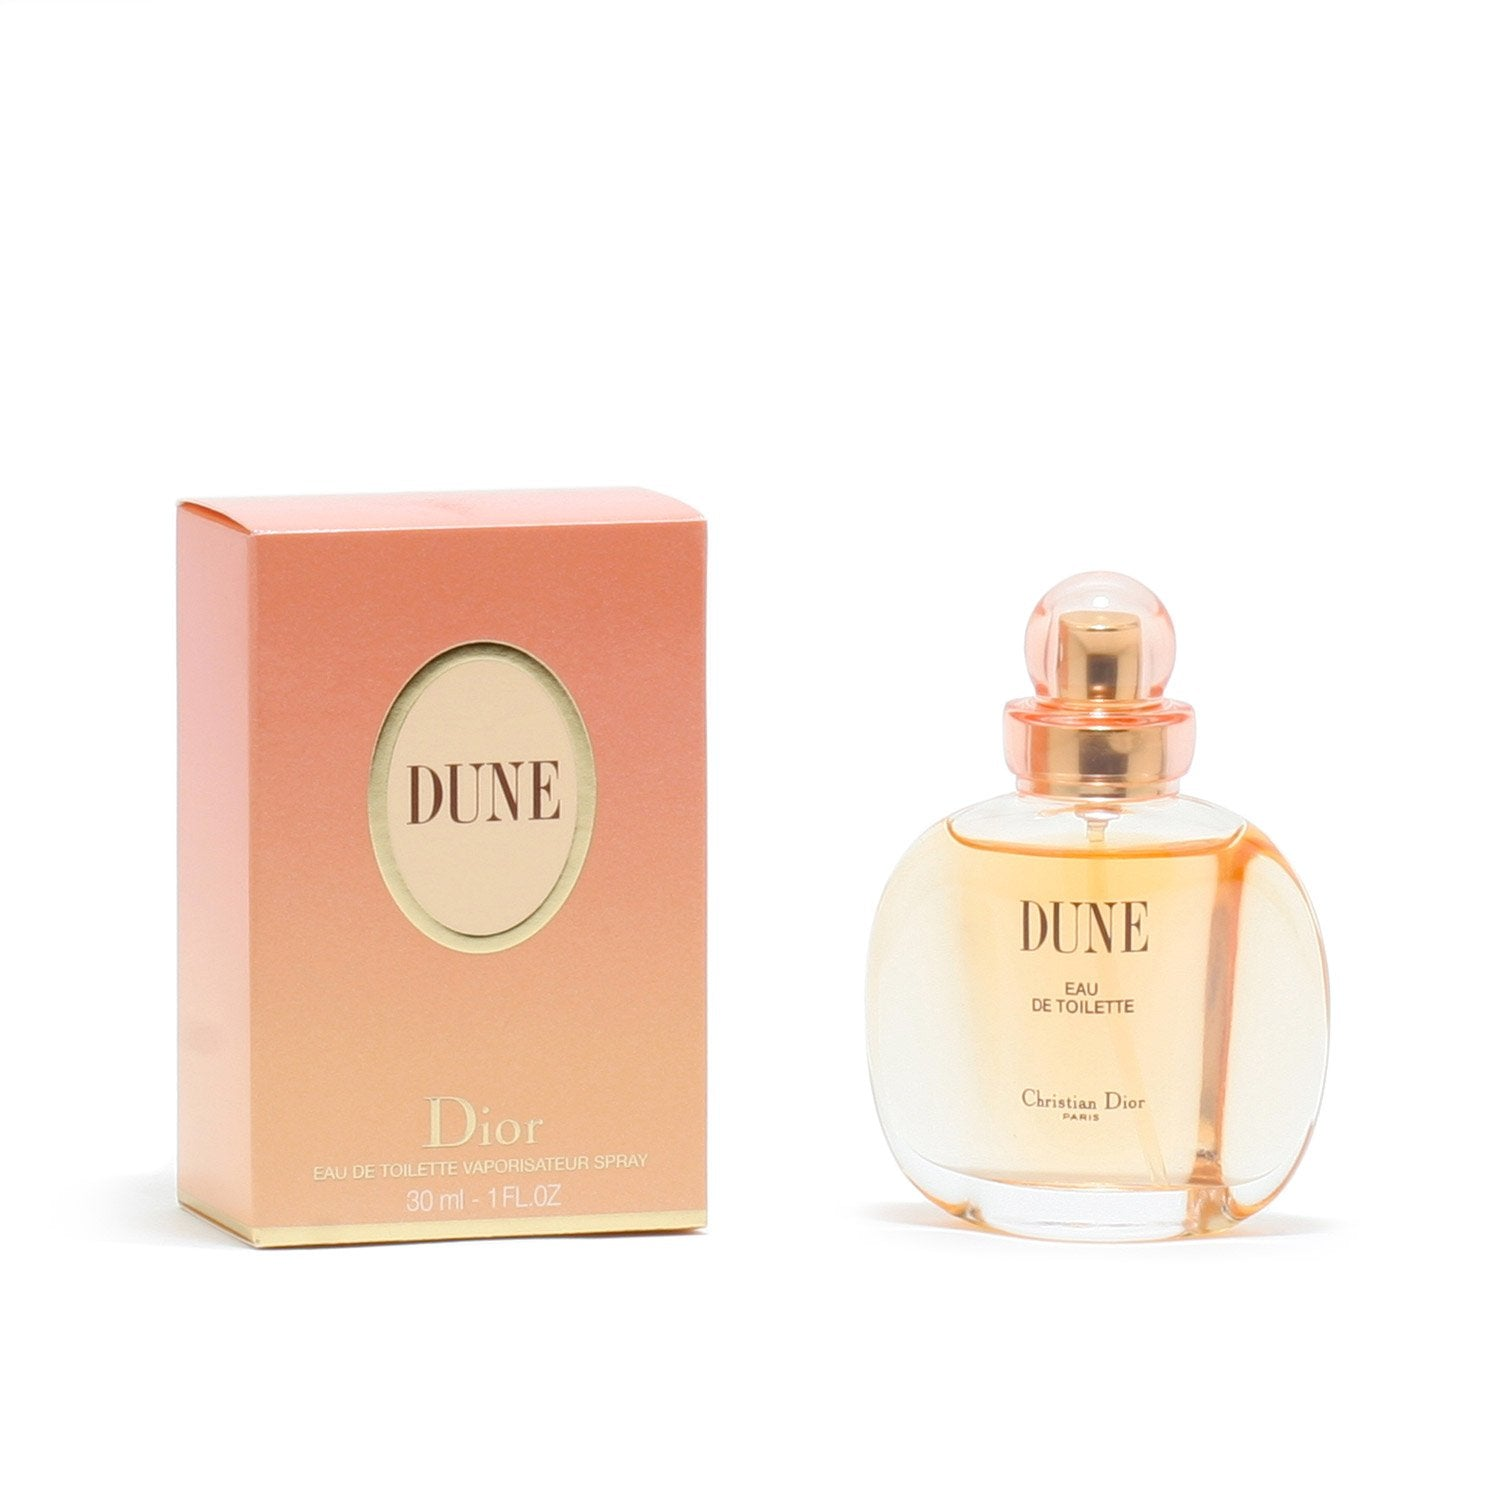 Perfume - DUNE FOR WOMEN BY CHRISTIAN DIOR - EAU DE TOILETTE SPRAY